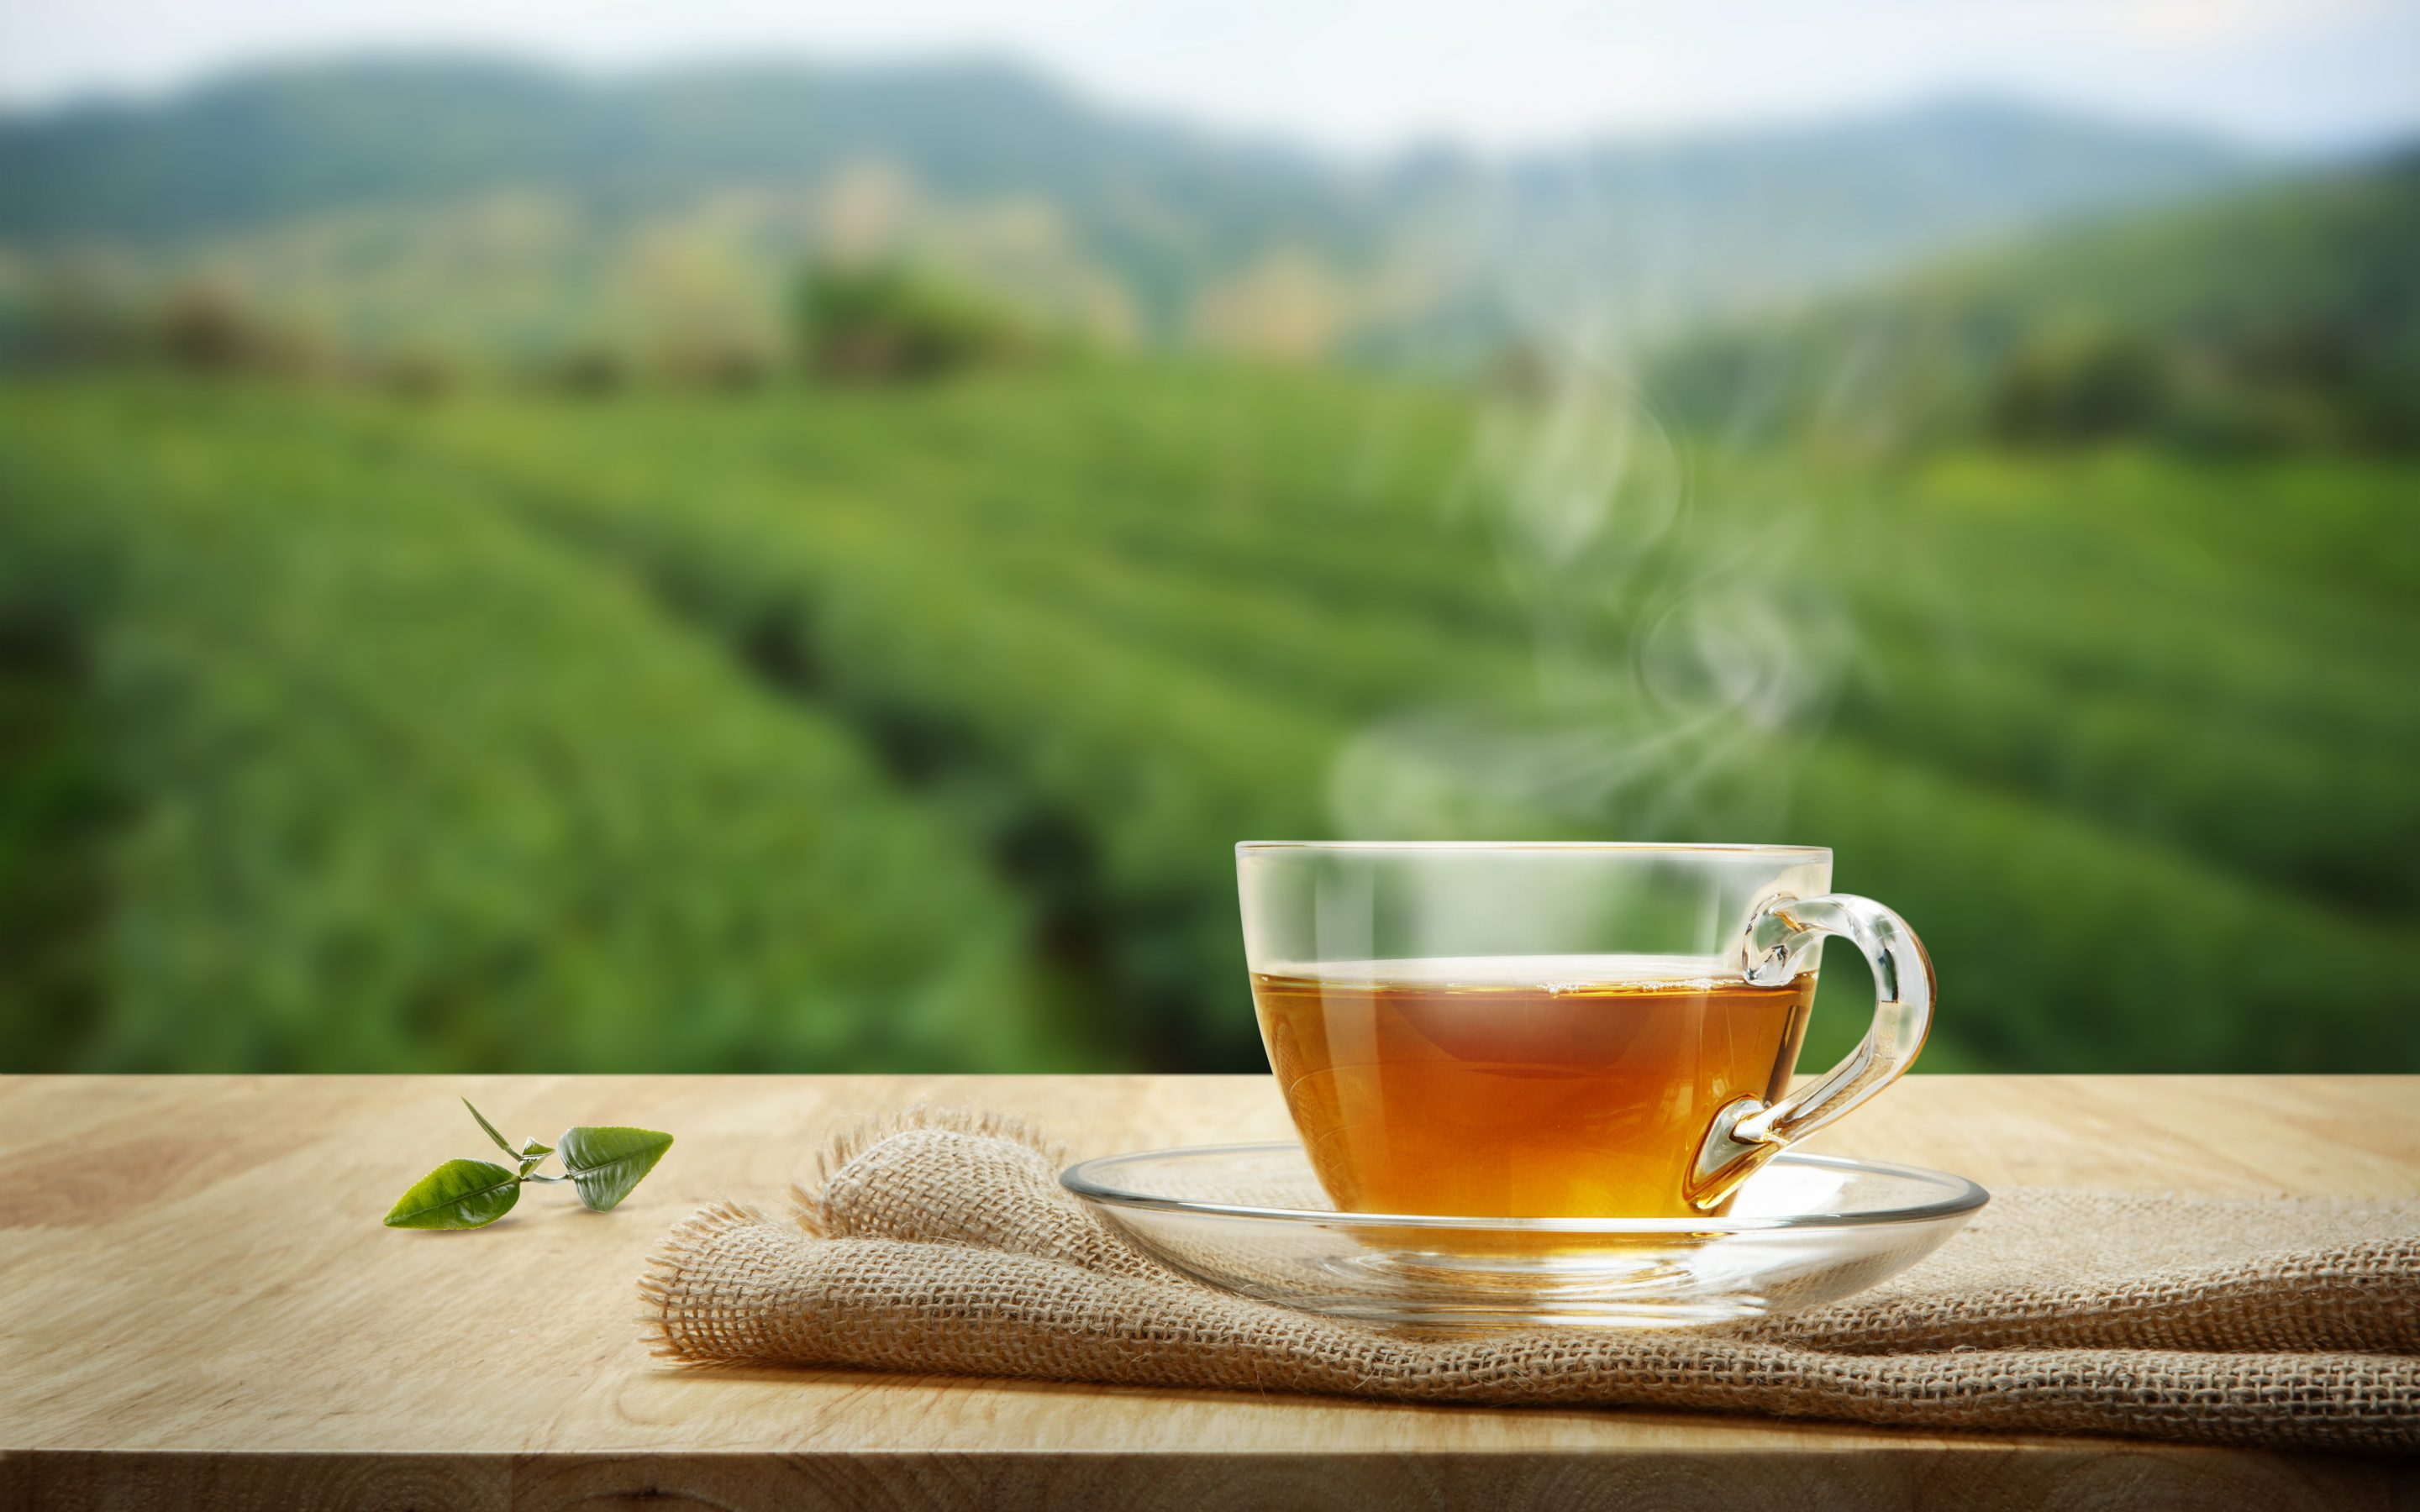 tea in a glass cup in front of field of growing tea